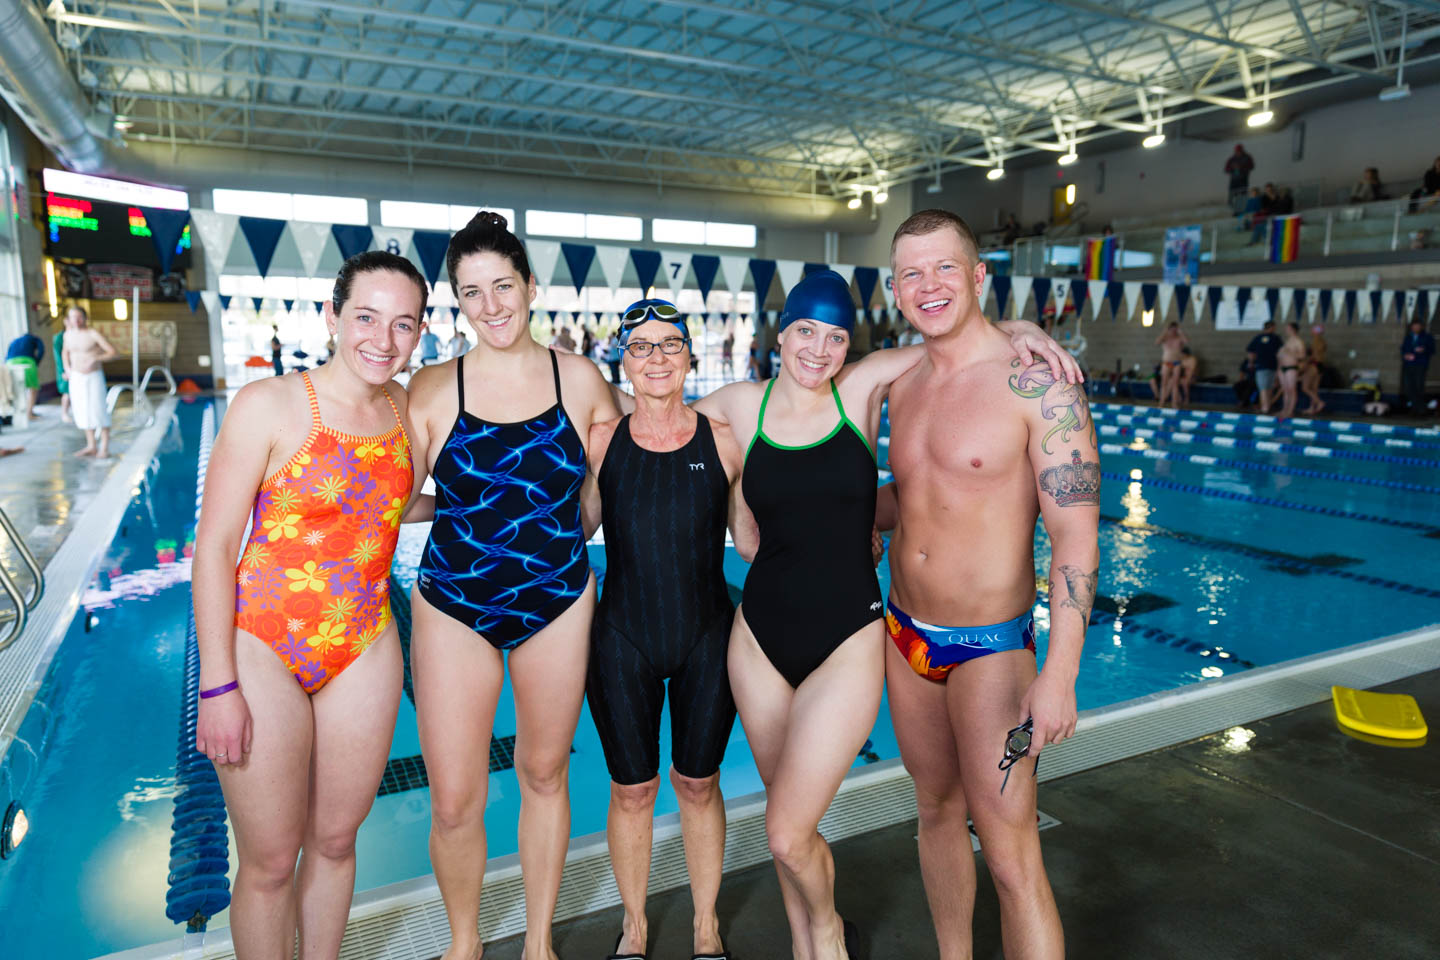 Swimmers come from around the state and from around the country for the Ski-n-Swim